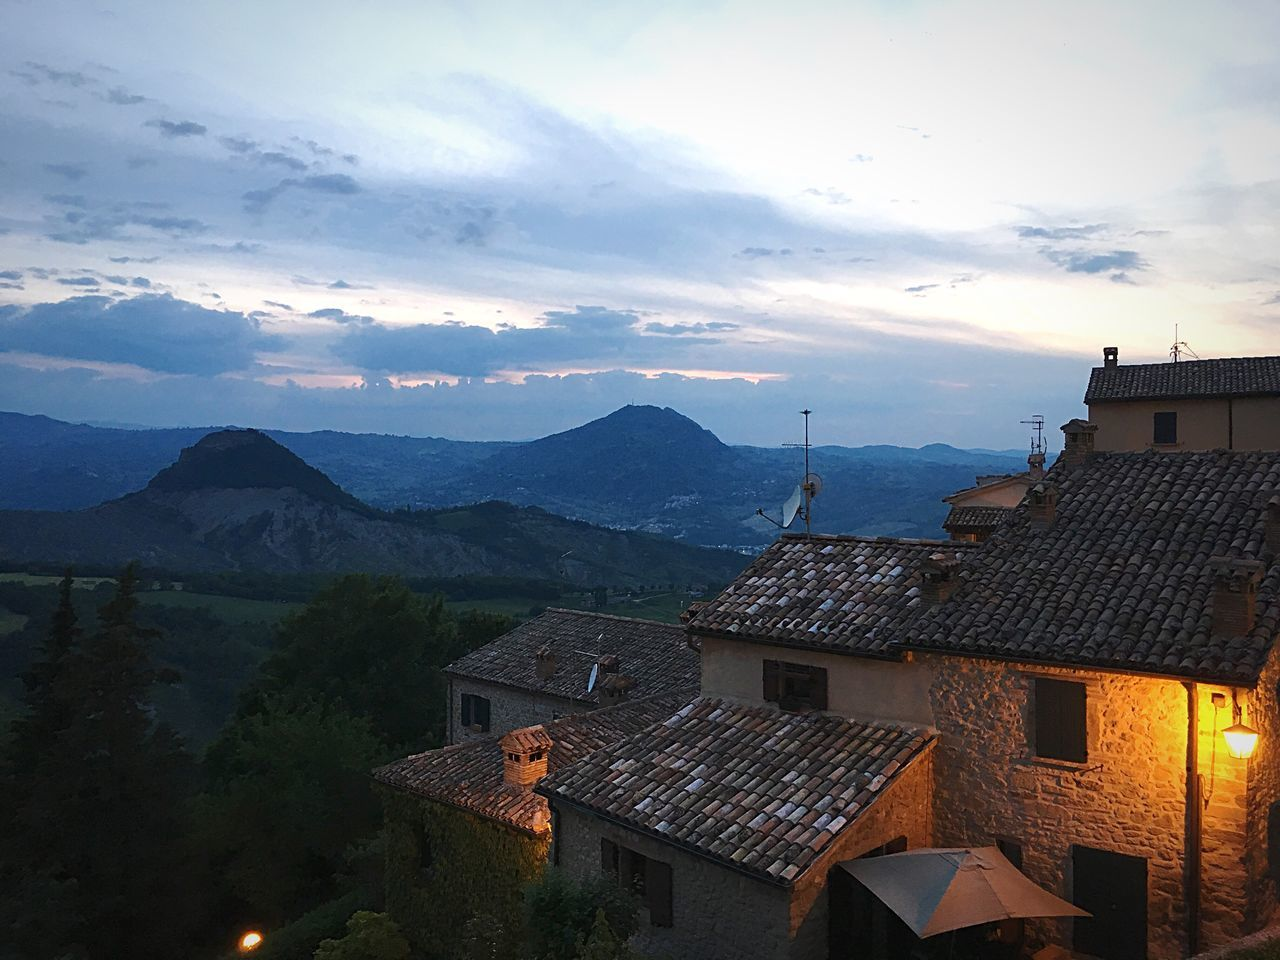 Architecture Building Exterior Built Structure House No People Sky High Angle View Outdoors Cloud - Sky Mountain Roof Nature Day Tiled Roof  Beauty In Nature Sanleo Montefeltro